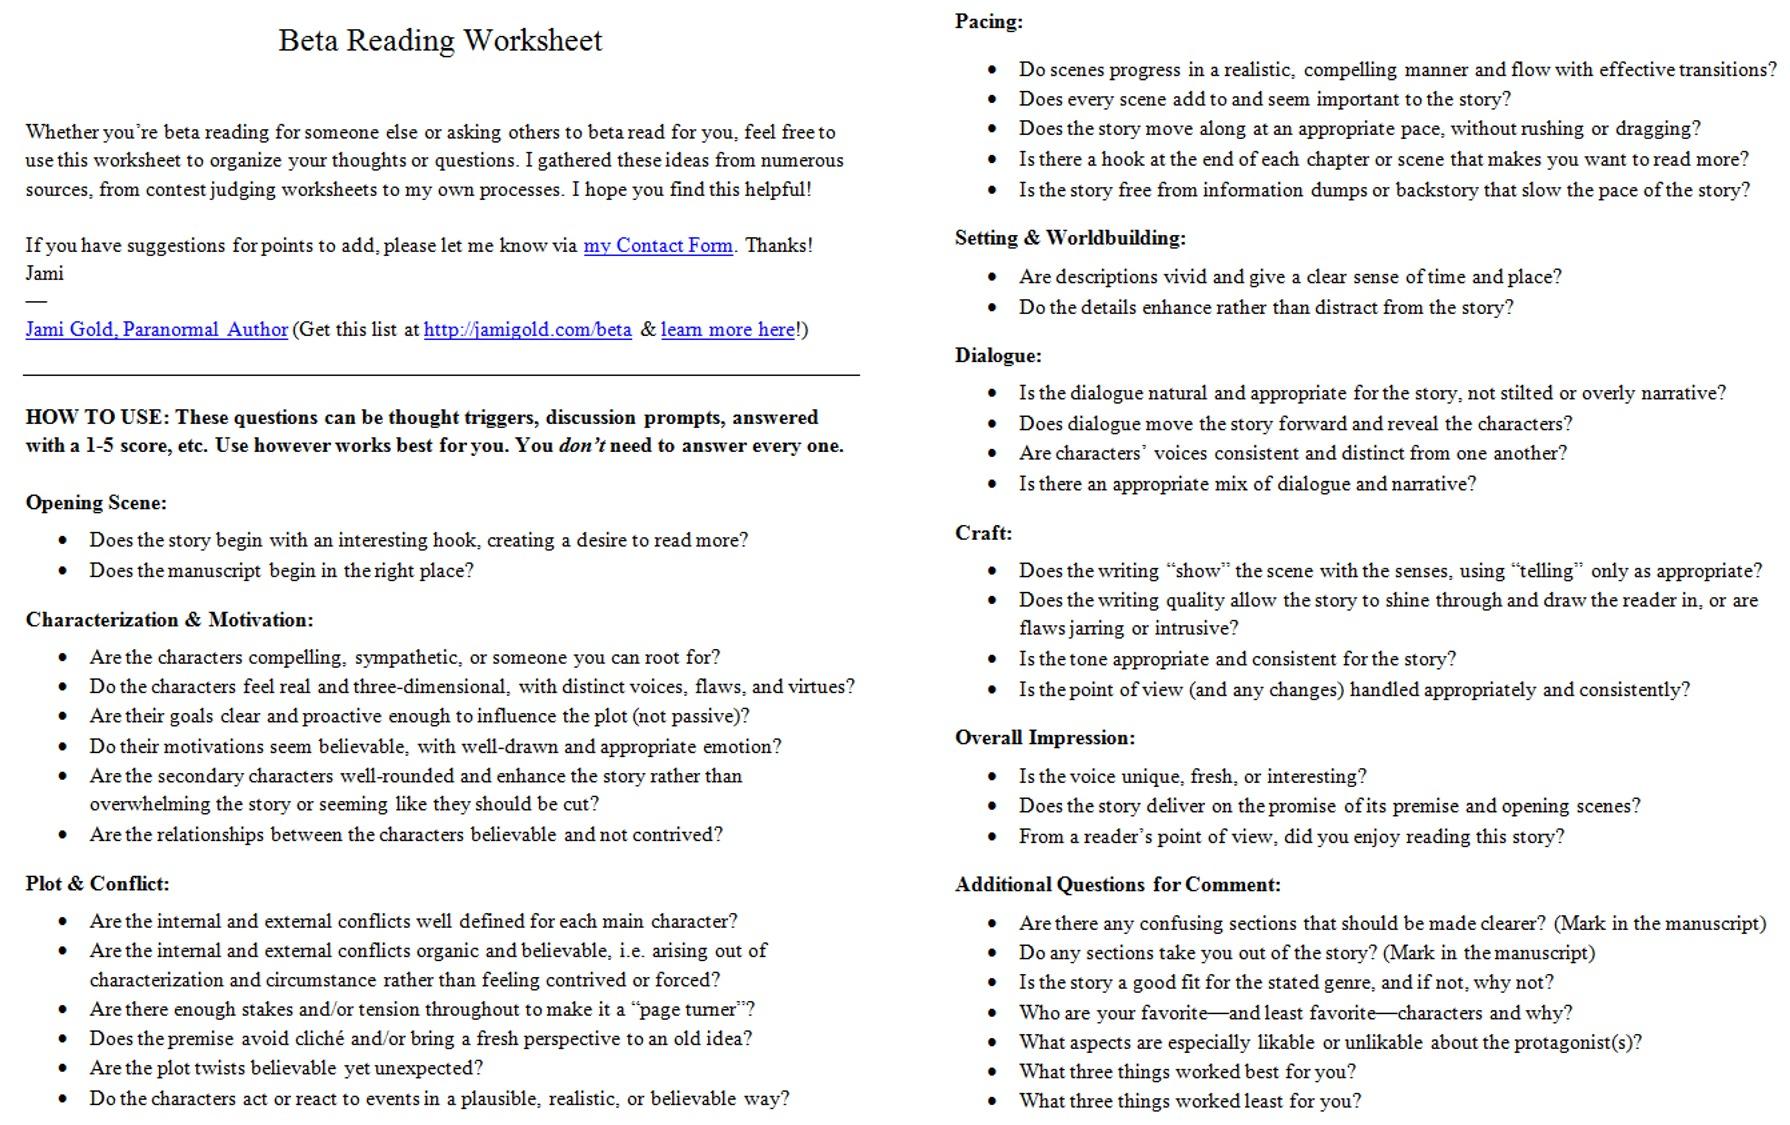 Proatmealus  Ravishing Worksheets For Writers  Jami Gold Paranormal Author With Licious Screen Shot Of The Twopage Beta Reading Worksheet With Cute Static And Dynamic Characters Worksheet Also High School Grammar Practice Worksheets In Addition Pov Worksheet And Rd Grade Prefix Worksheets As Well As Rd Grade Math Worksheets Rounding Additionally Trig Ratio Worksheets From Jamigoldcom With Proatmealus  Licious Worksheets For Writers  Jami Gold Paranormal Author With Cute Screen Shot Of The Twopage Beta Reading Worksheet And Ravishing Static And Dynamic Characters Worksheet Also High School Grammar Practice Worksheets In Addition Pov Worksheet From Jamigoldcom